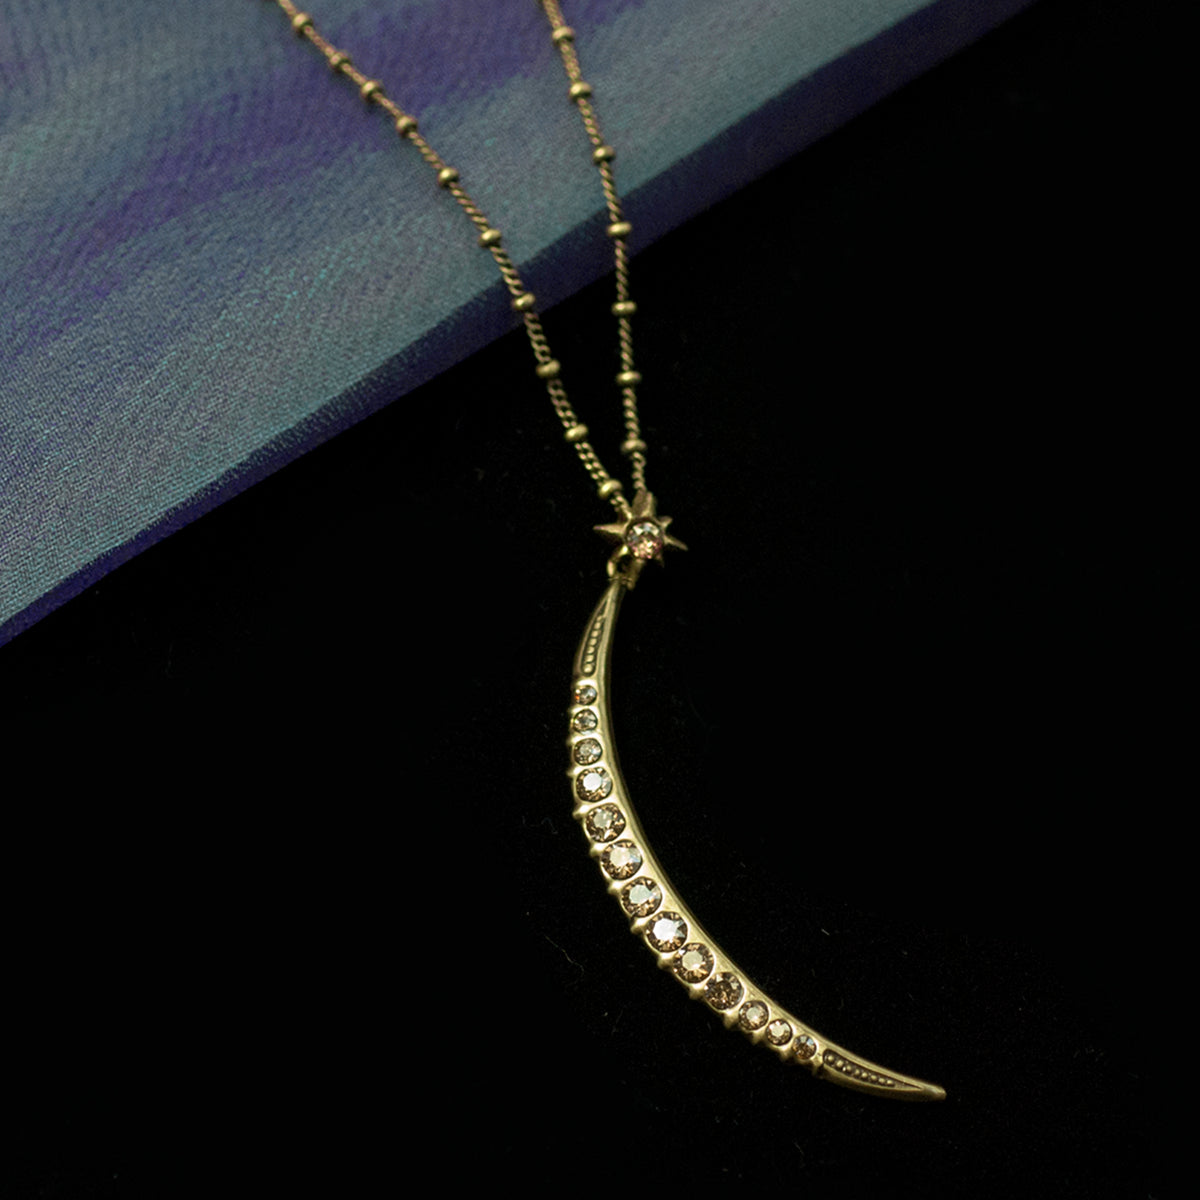 Half Moon Pendant Necklace N1627 - Sweet Romance Wholesale